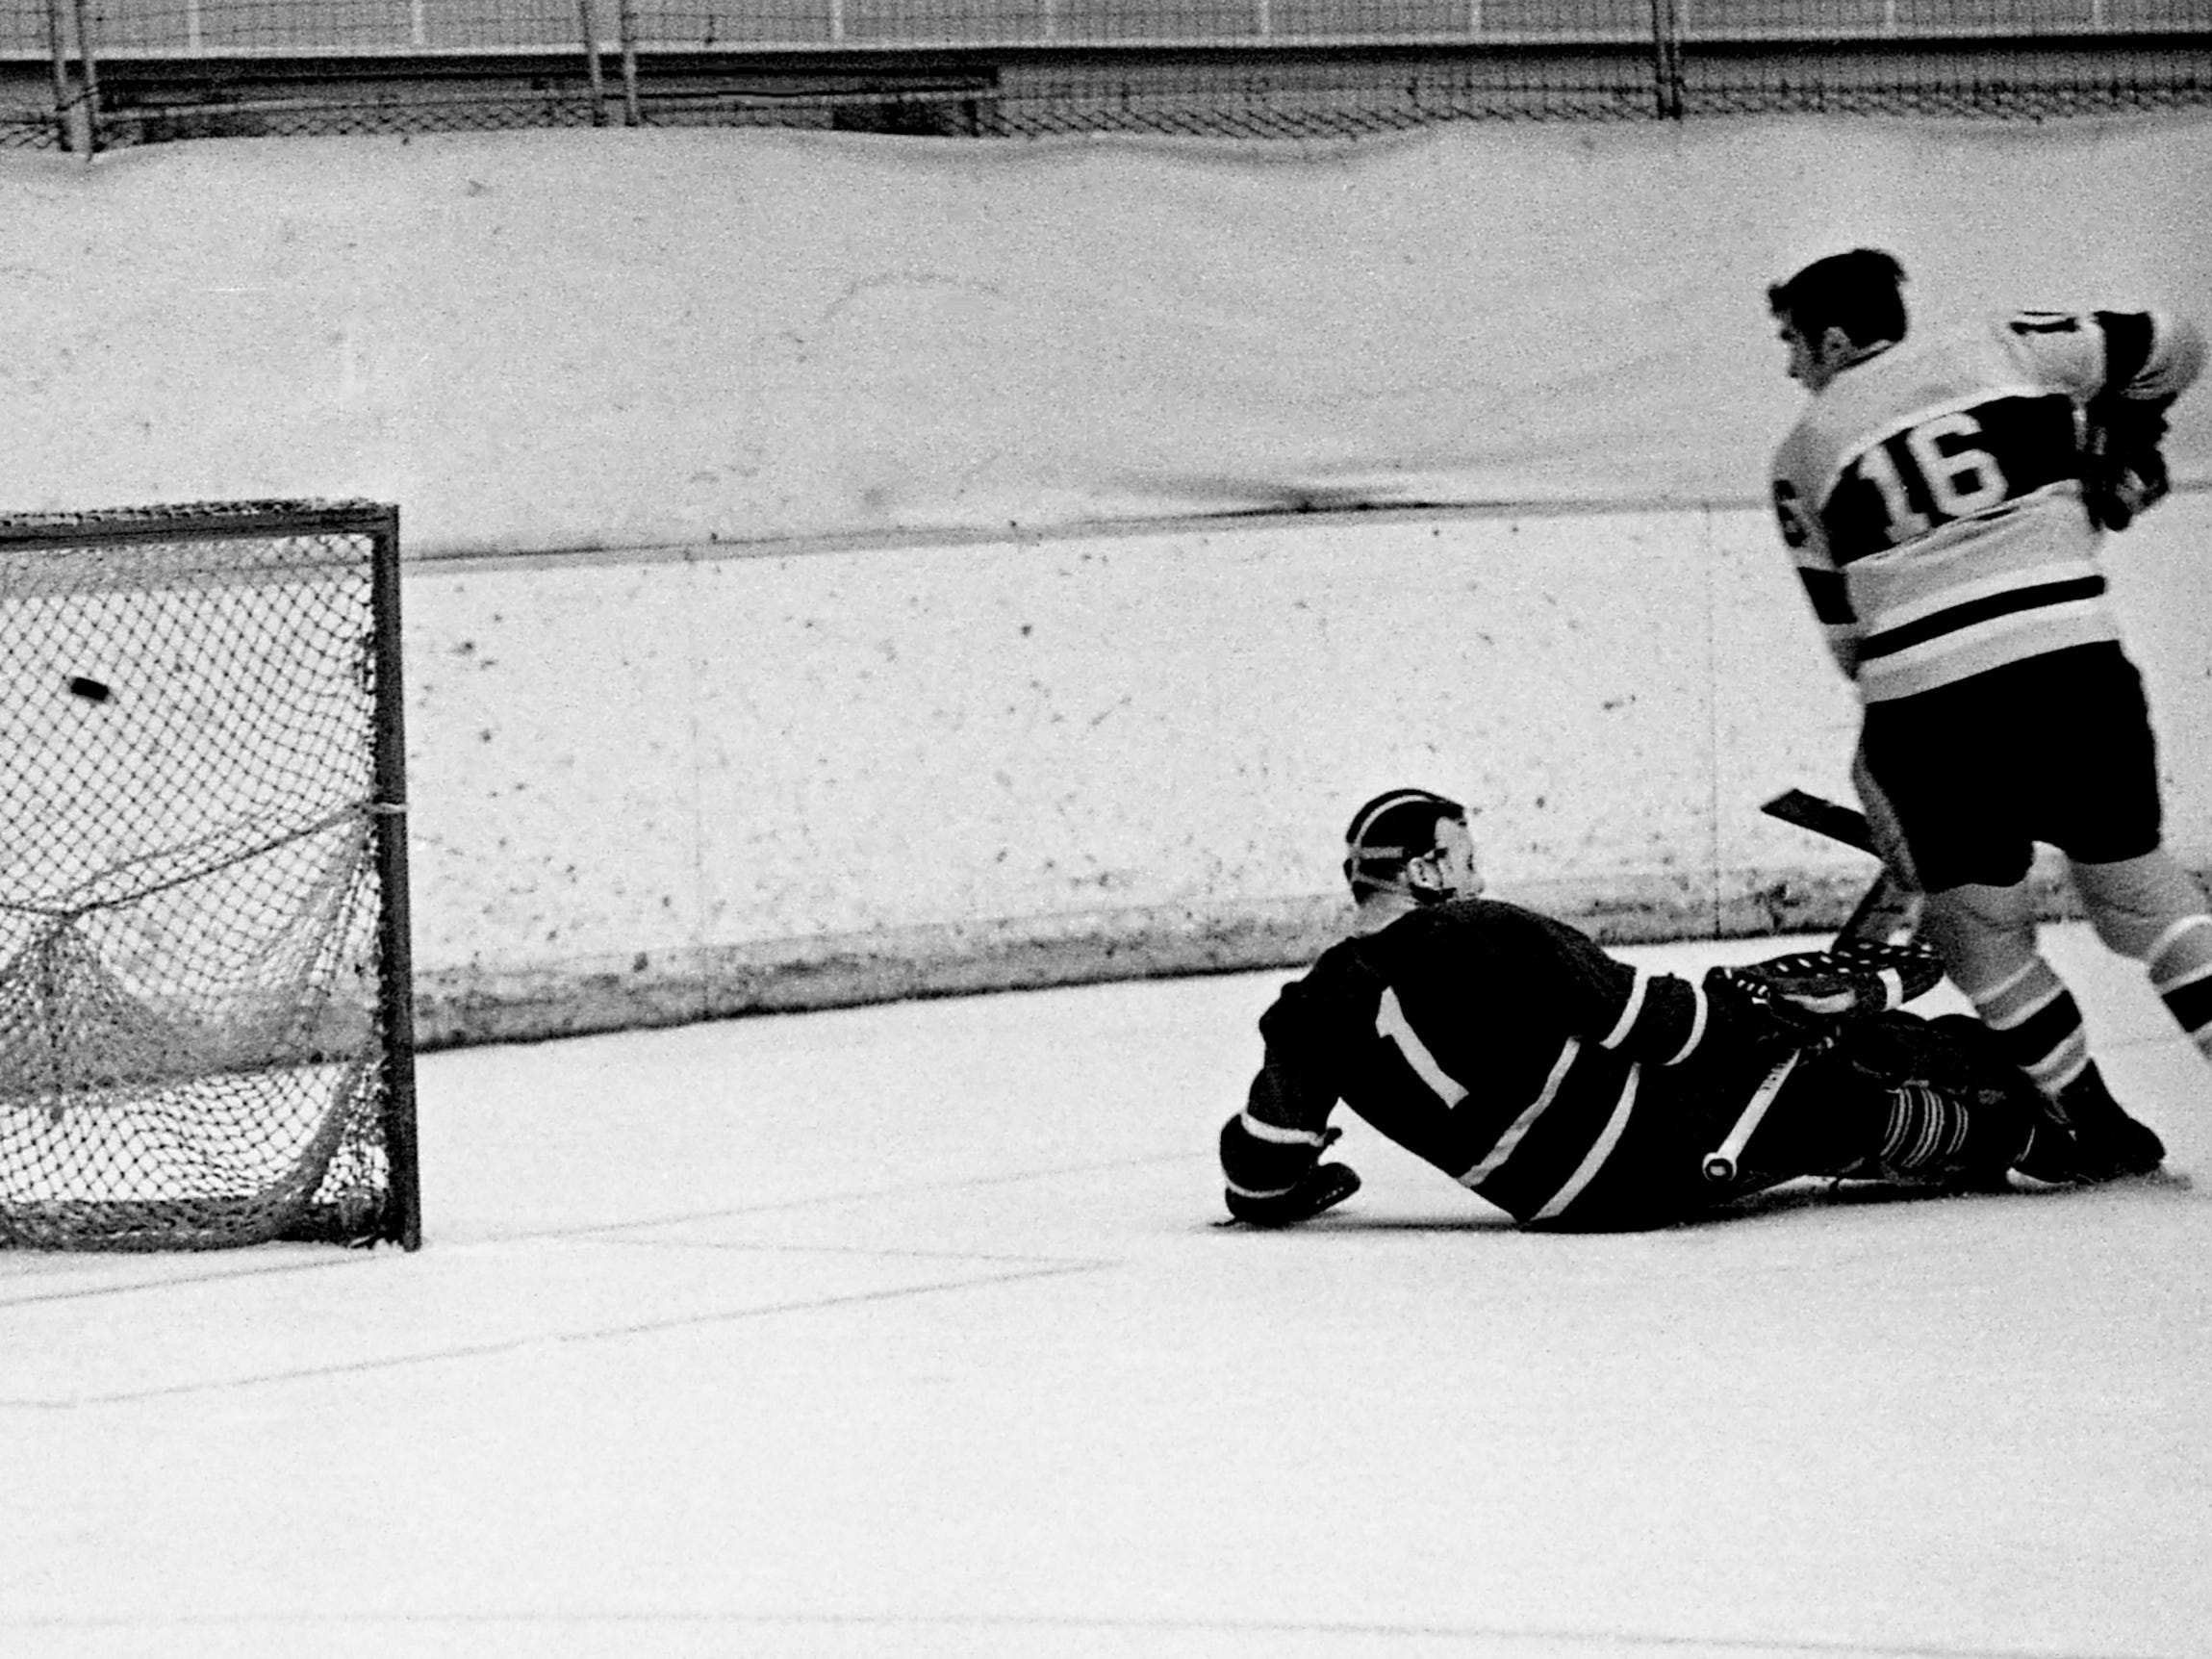 Nashville Dixie Flyers winger Karl Haggarty (16) fires in the team's sixth goal of the evening during a 10-5 victory over the Charlotte Checkers before 2,702 fans at Municipal Auditorium on Jan. 2, 1969. Charlotte goalie Bob Whidden (1) was pulled off balance, leaving an open net for Haggarty.